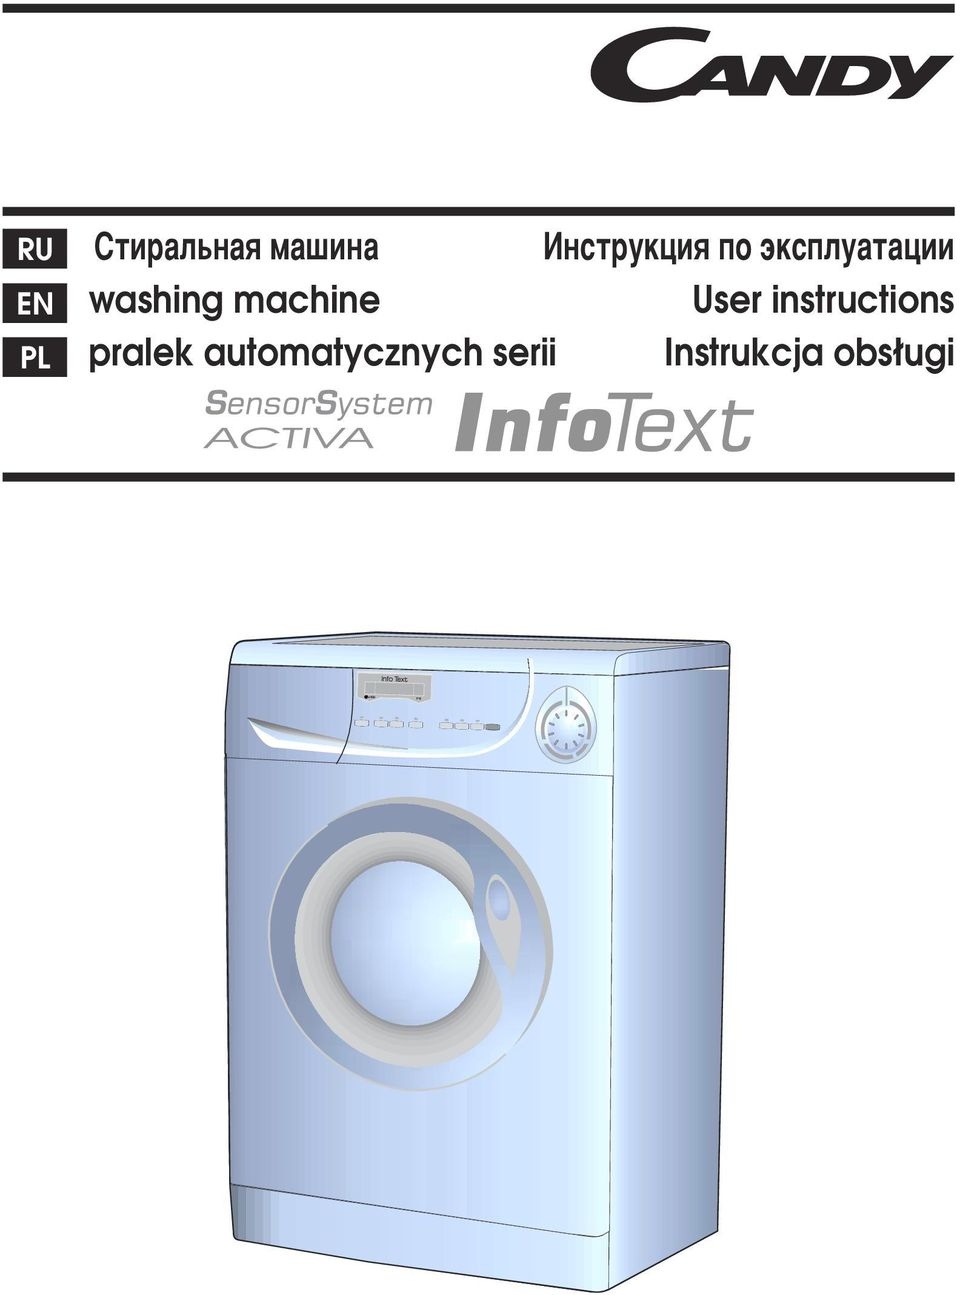 washing machine User instructions